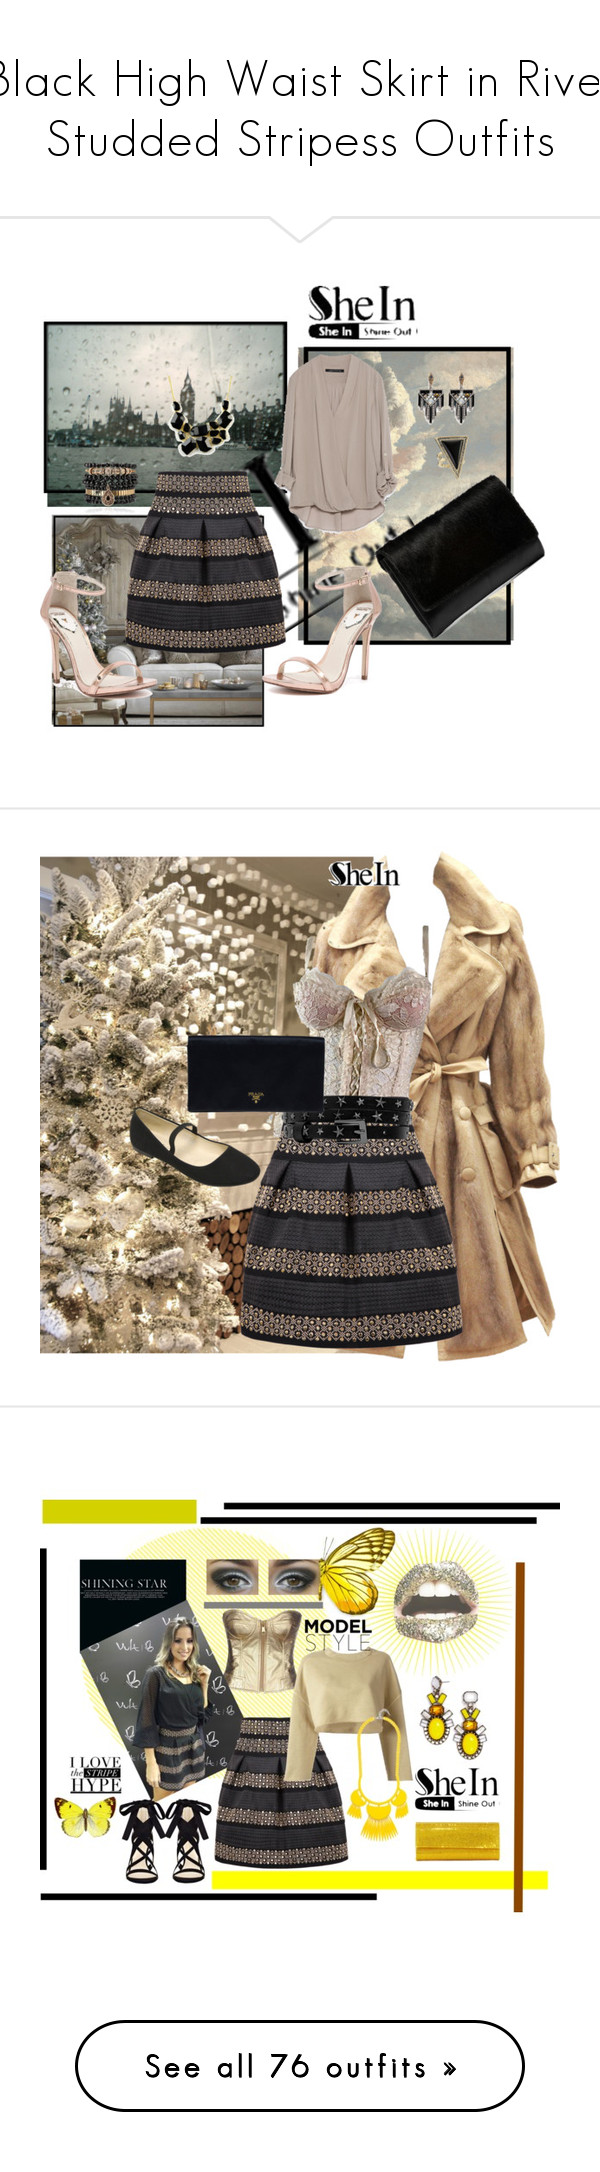 """Black High Waist Skirt in Rivet Studded Stripess Outfits"" by fairywitch ❤ liked on Polyvore featuring Zara, Windsor Smith, House of Harlow 1960, Samantha Wills, Emi Jewellery, Lulu Frost, Manfield, women's clothing, women and female"